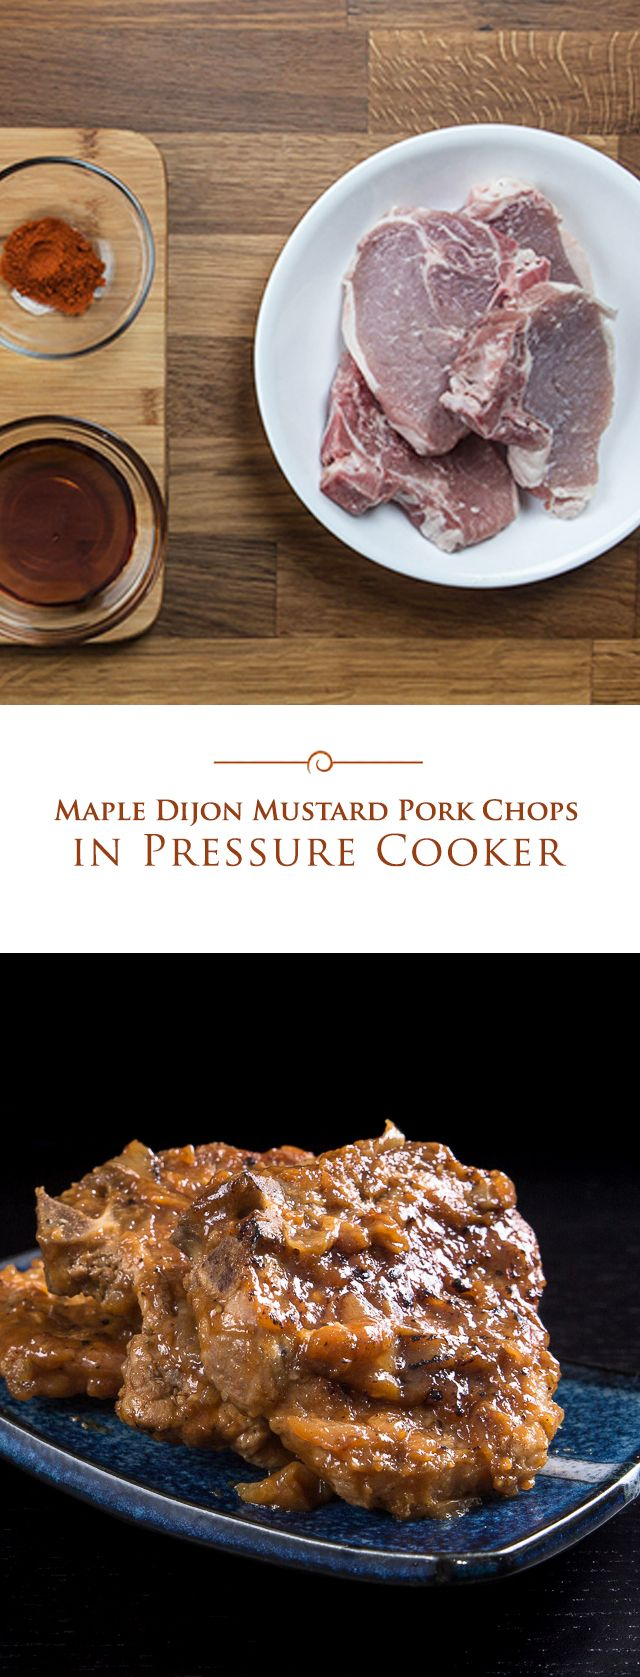 25+ Best Tender Pork Chops Ideas On Pinterest  Pork Marinade, Pork Chop  Marinade And Chop Meat Recipes